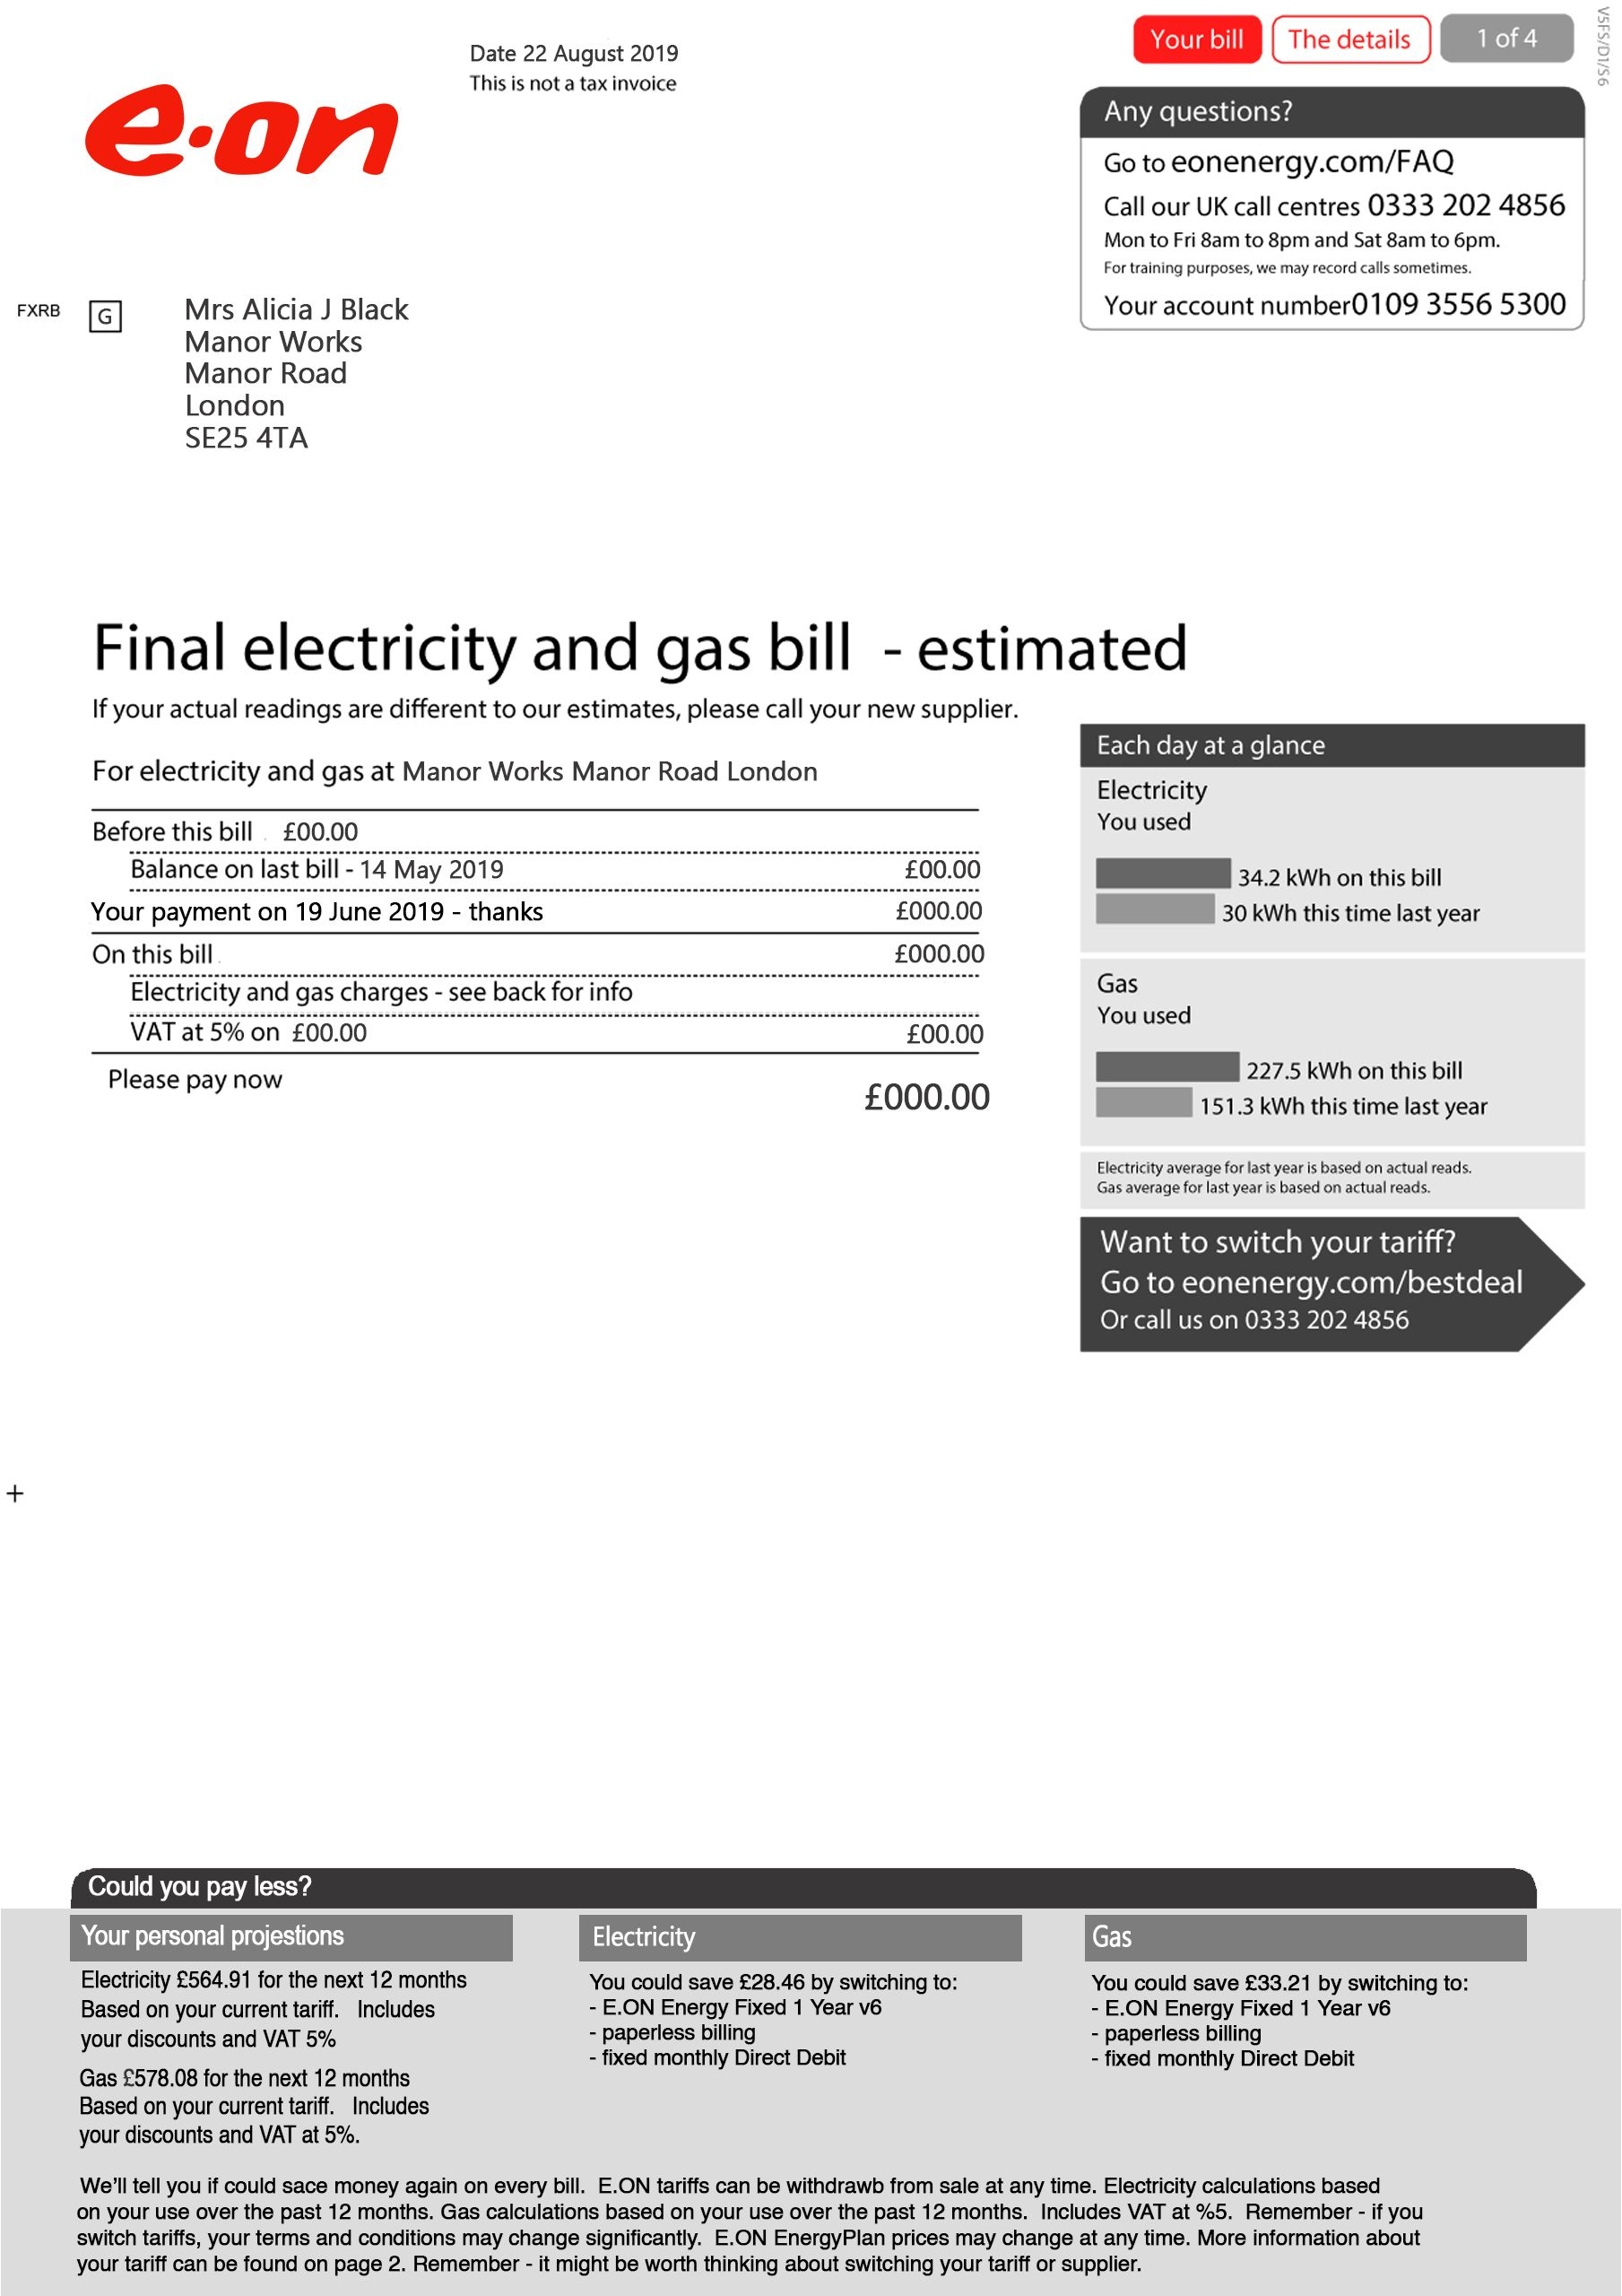 Eon Electricity And Gas Utility Bill Psd Template In 2021 Gas Utility Psd Templates Photoshop Program